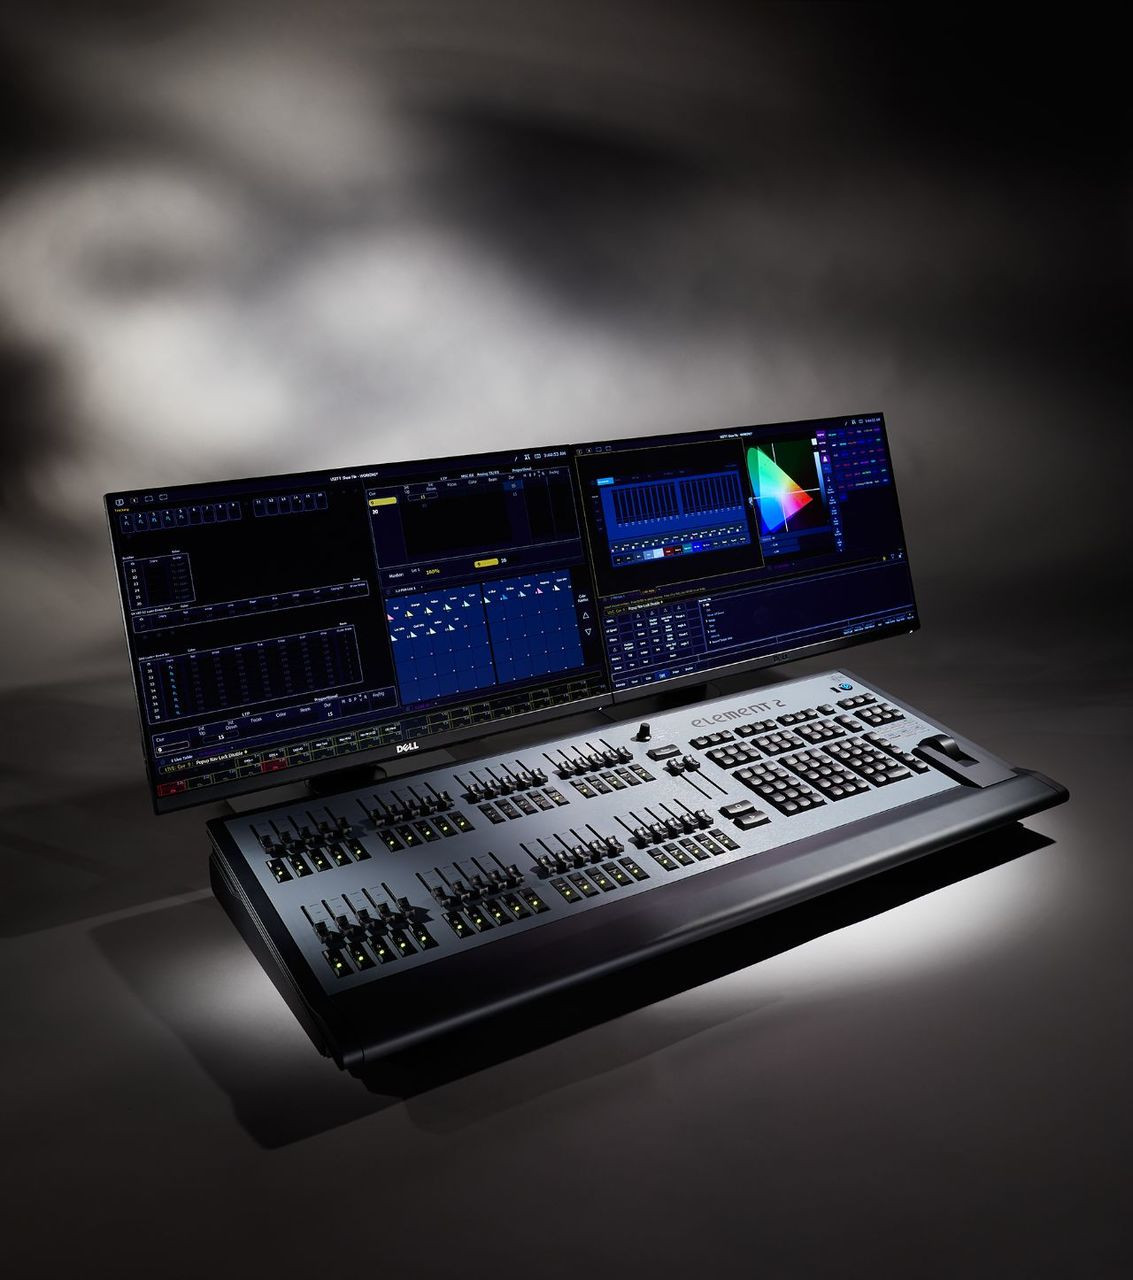 ETC Element 2 Lighting Control Desk & ETC Element 2 Lighting Console | Stage u0026 Theatre Lighting Equipment ...